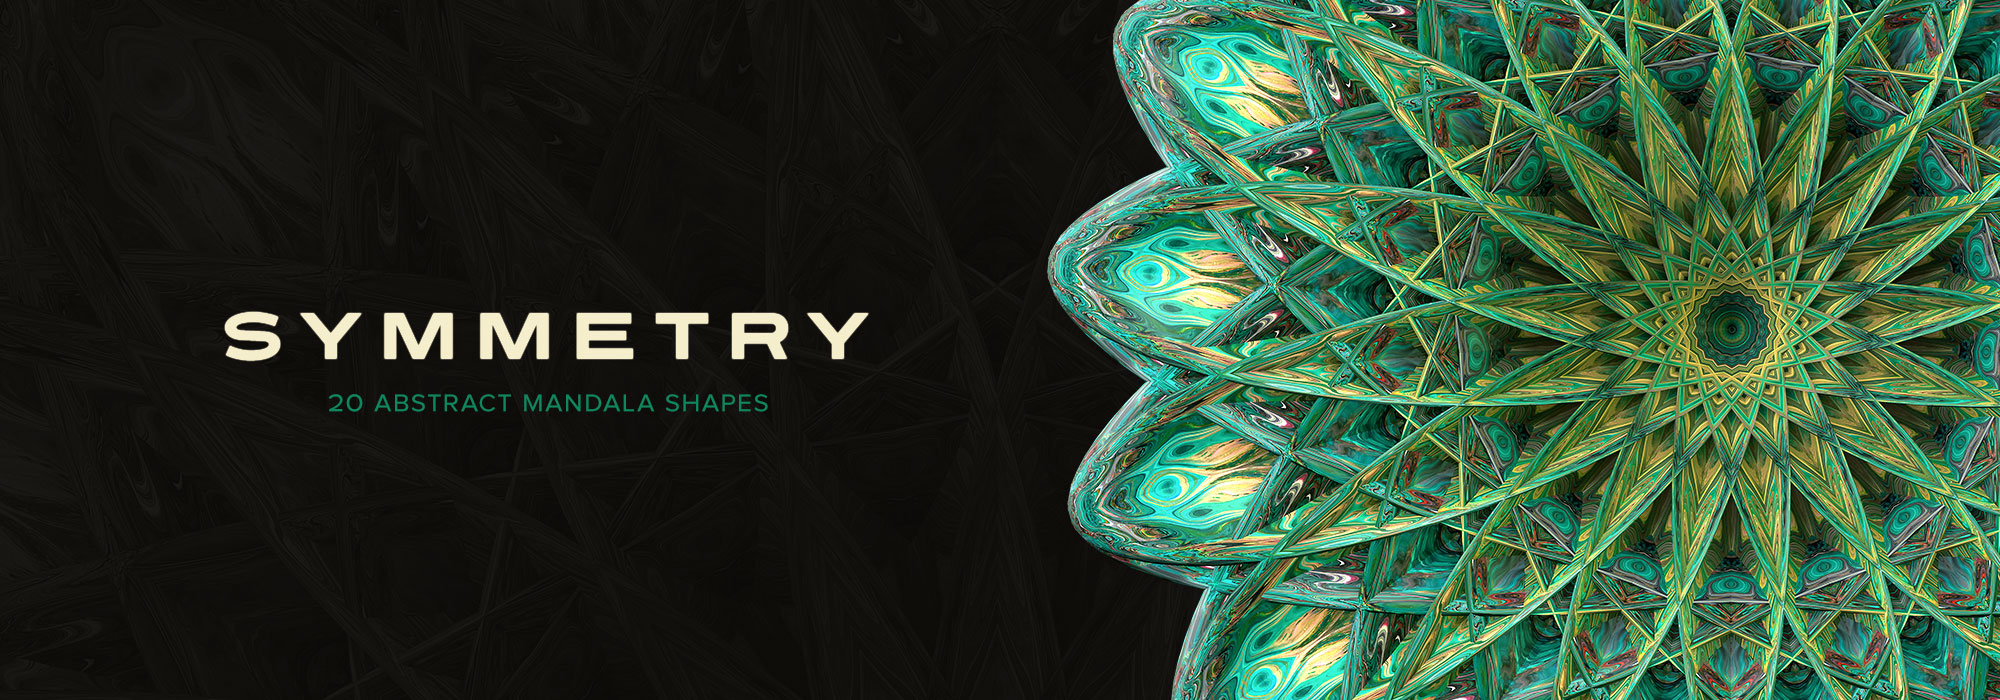 Symmetry: 15 Abstract Mandala Shapes – Chroma Supply